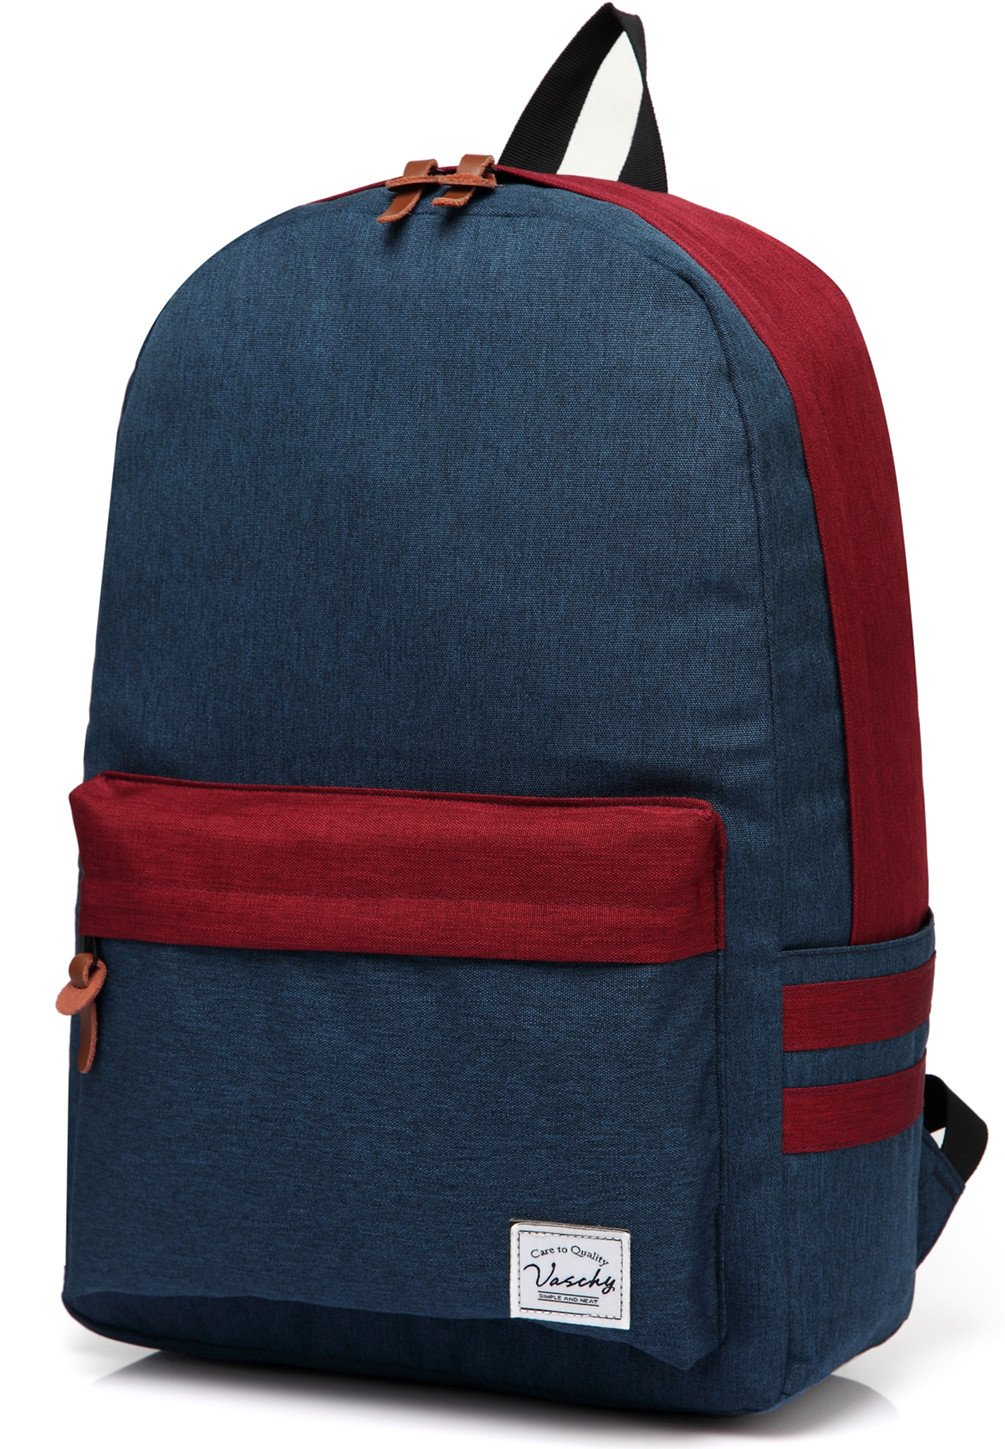 Vaschy Casual Backpack for School Teenager with 15.6 inch Laptop Sleeve Water Resistant Lightweight Rucksack Navy Blue